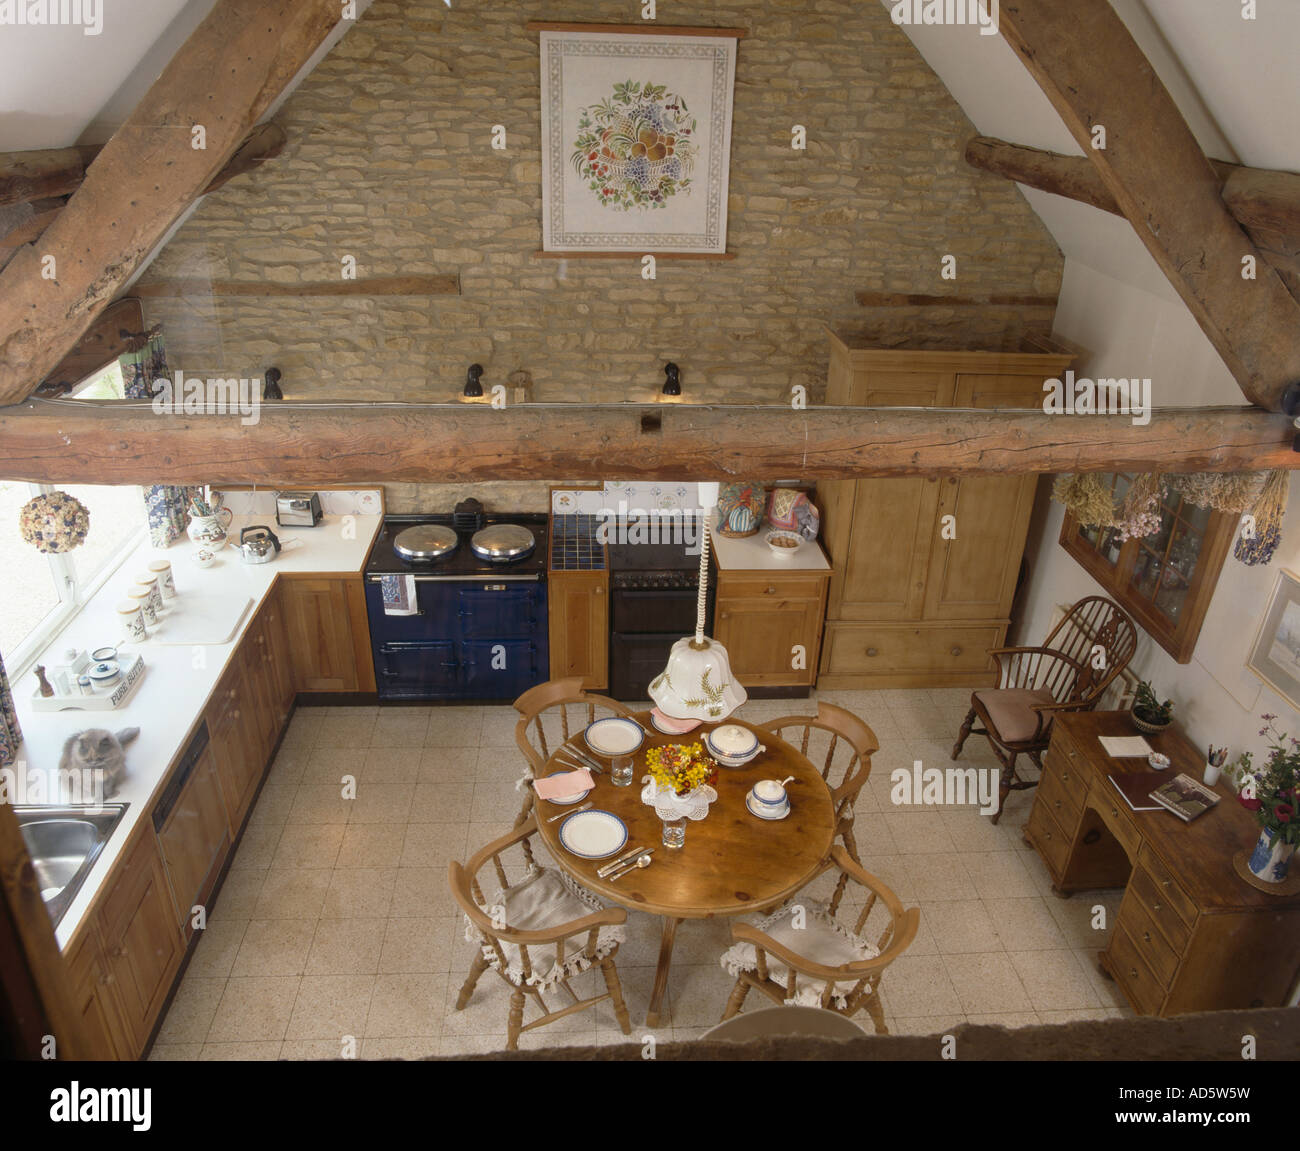 Barn Conversion Kitchens aerial view of circular wooden dining table and chairs in barn